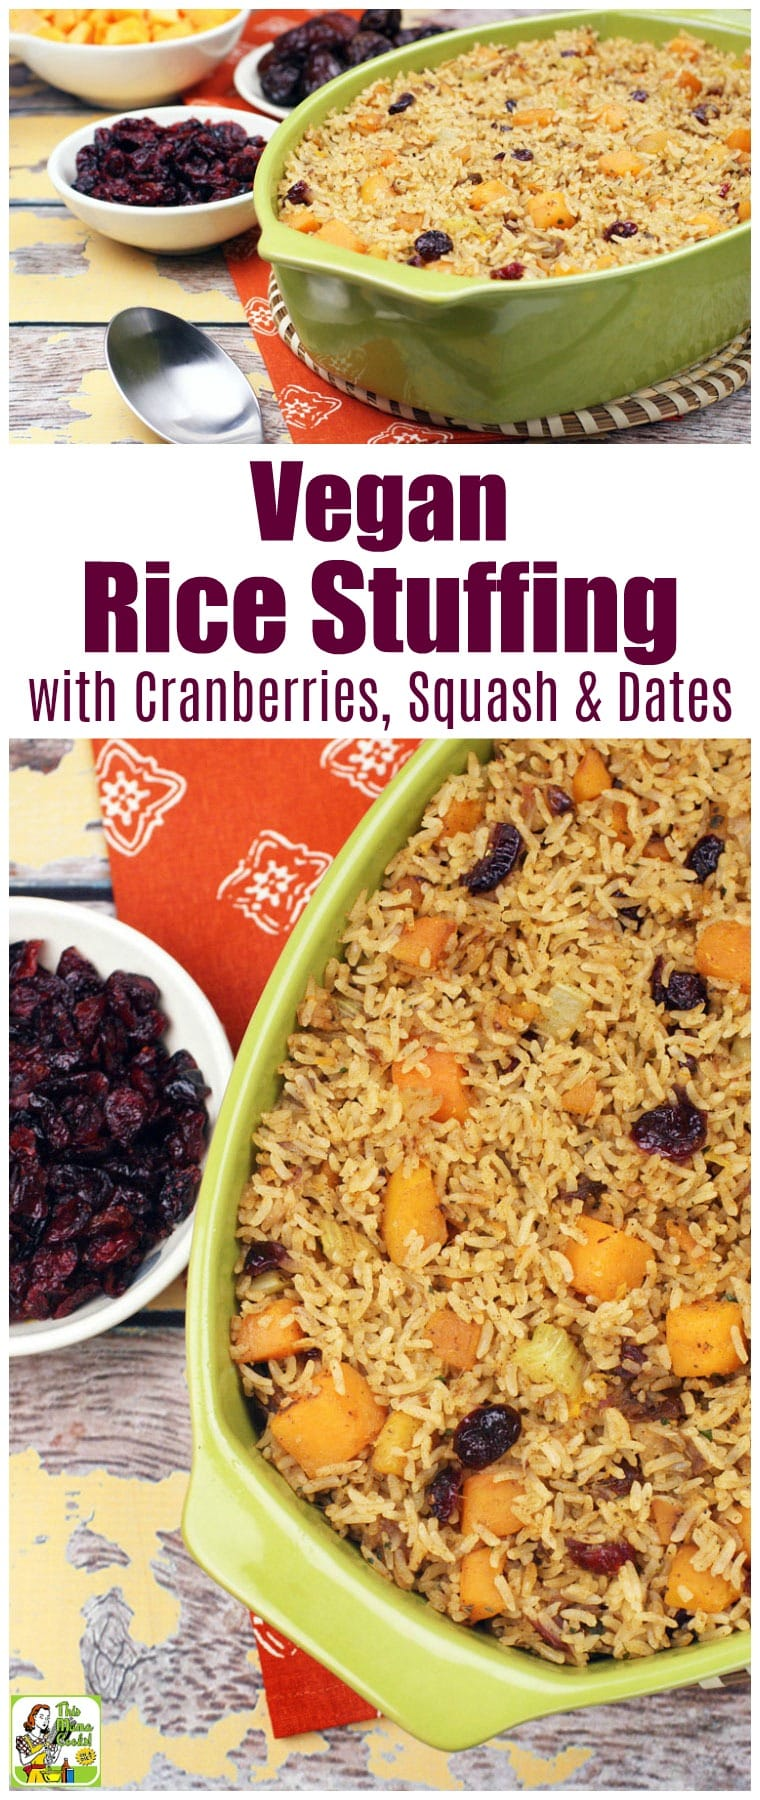 Vegan Rice Stuffing Recipe with Cranberries, Squash & Dates